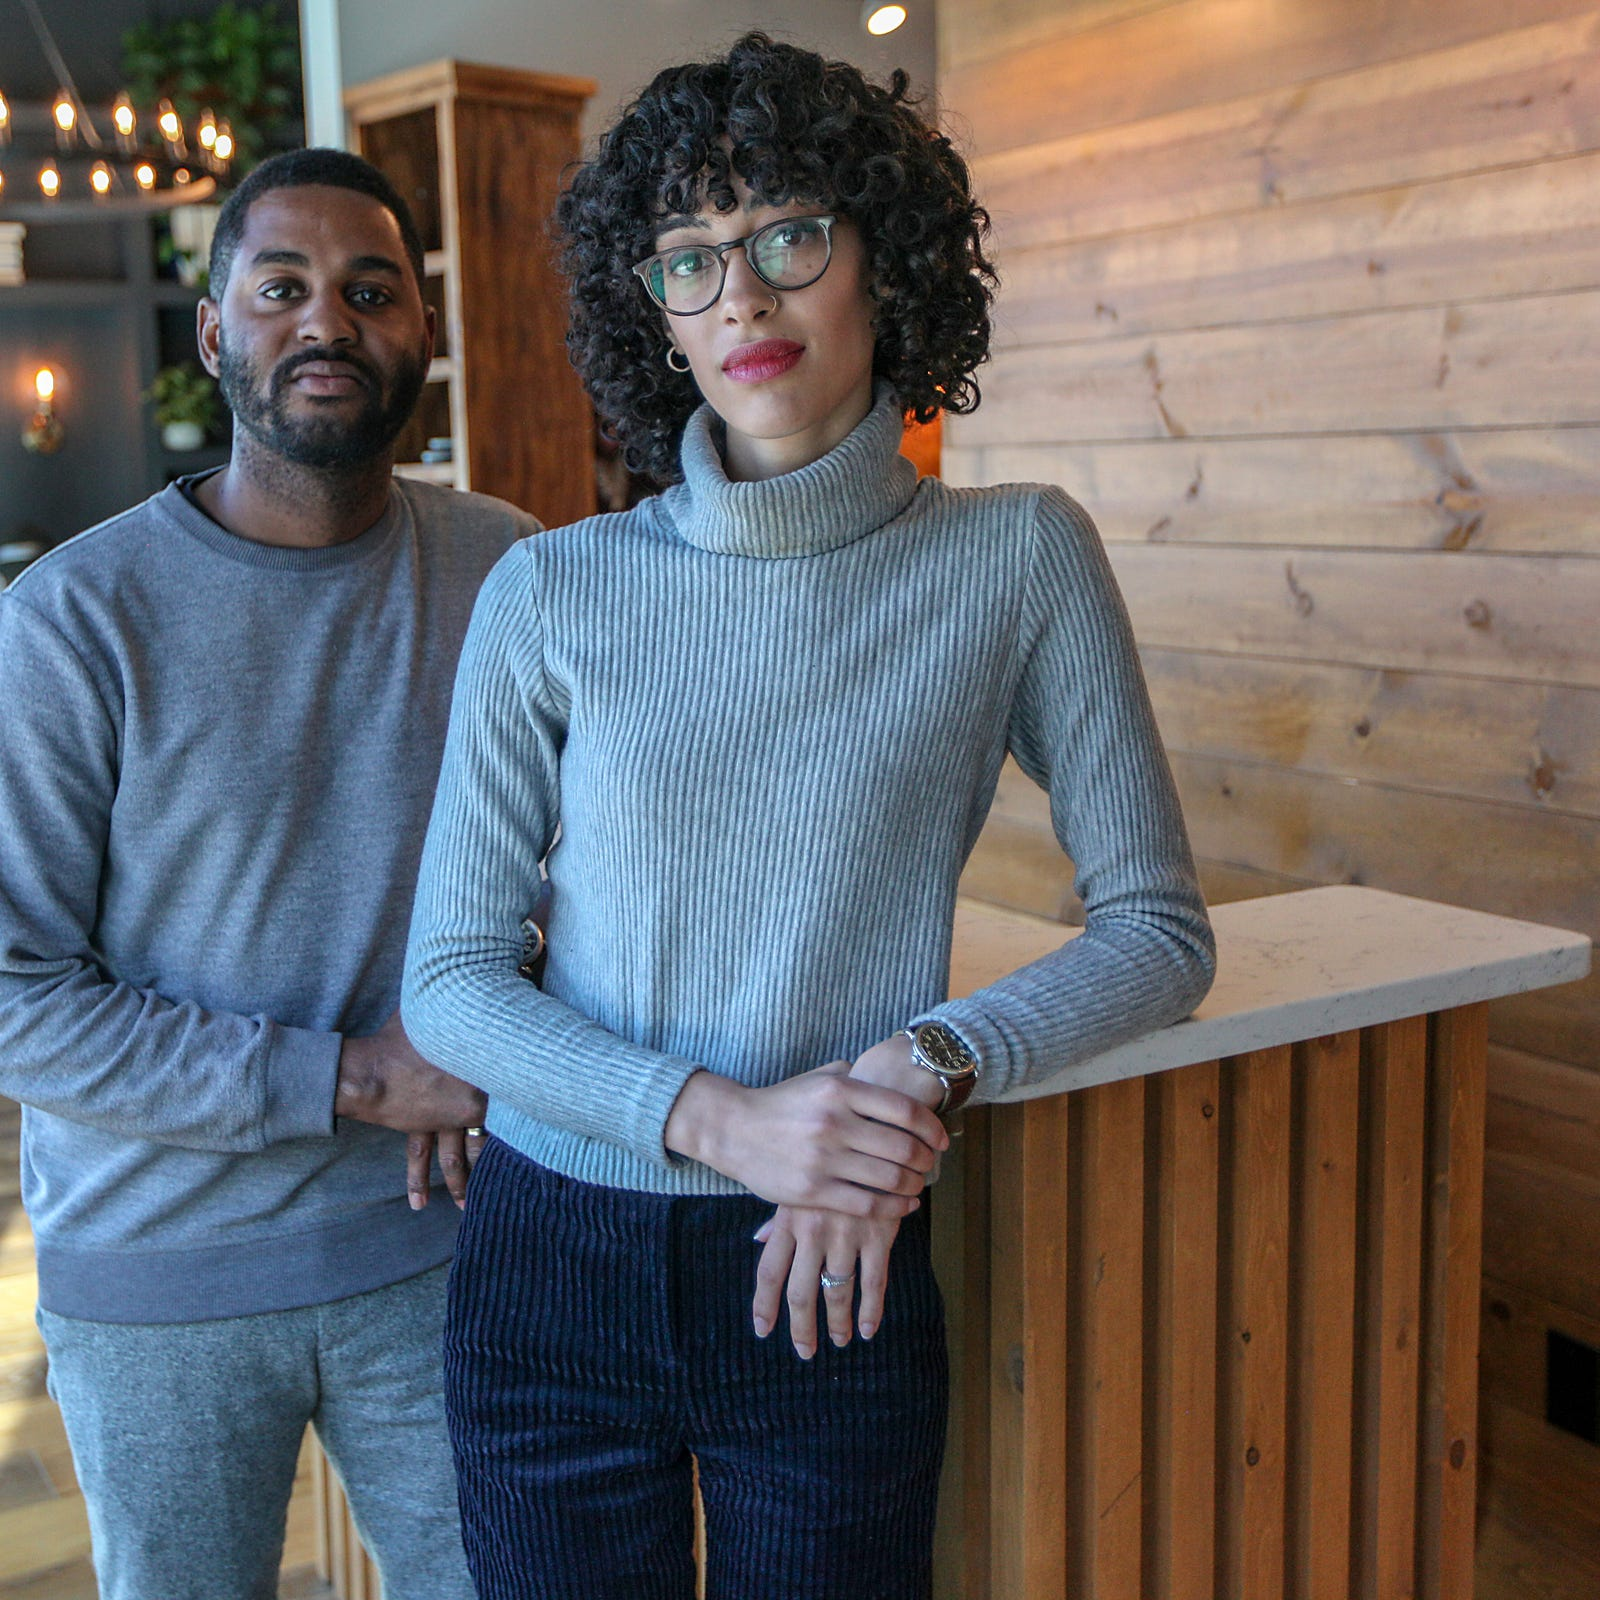 How two Detroit barbershop owners landed a deal with the NFL